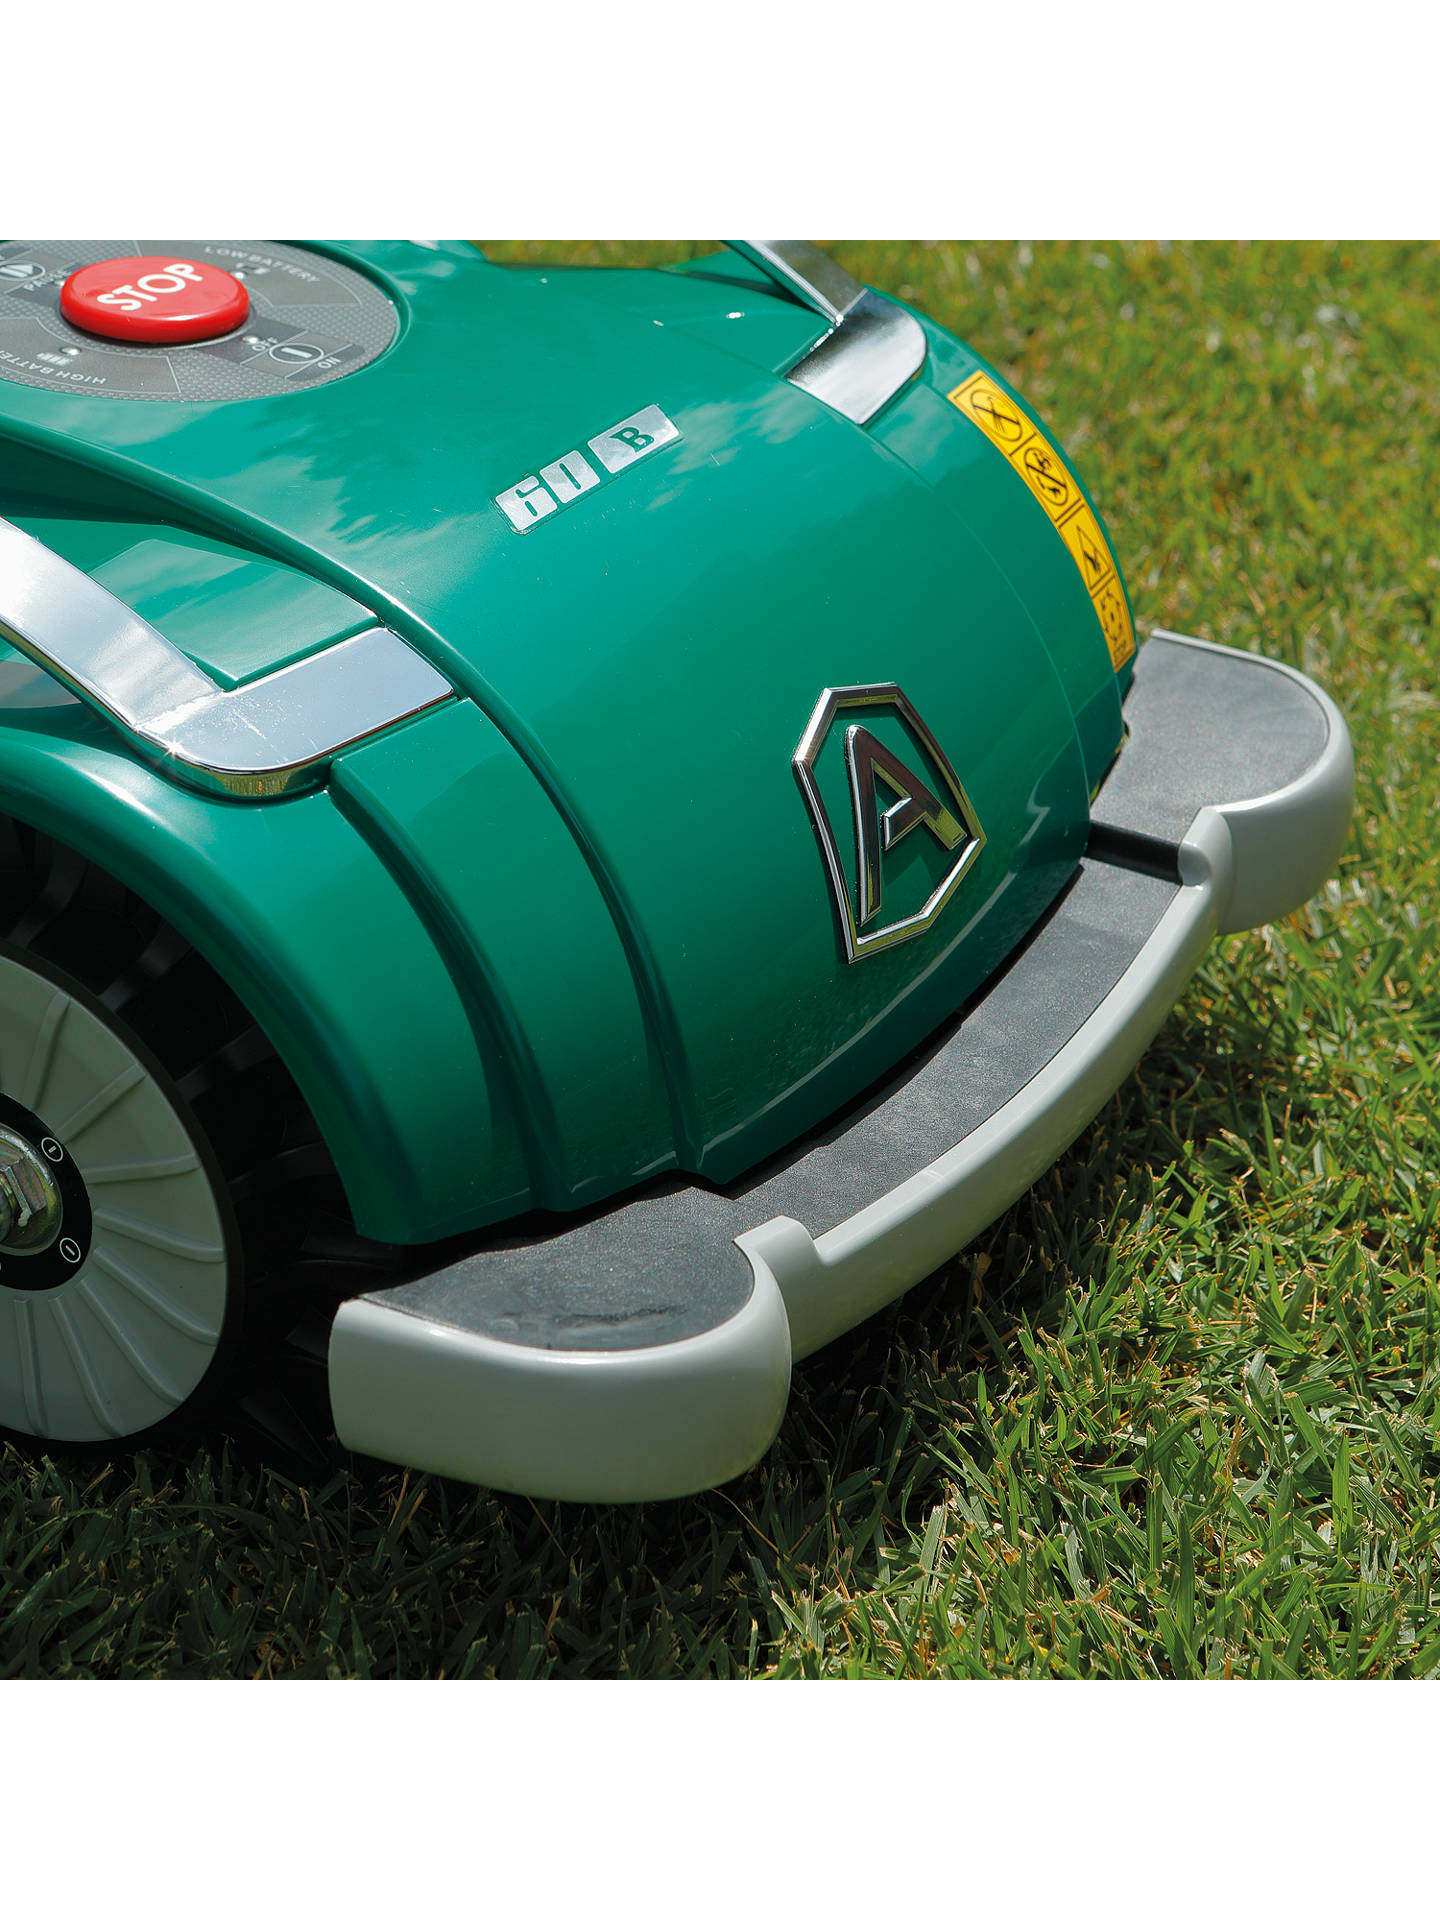 BuyAmbrogio L60 Deluxe Automatic Robotic Lawnmower Online at johnlewis.com